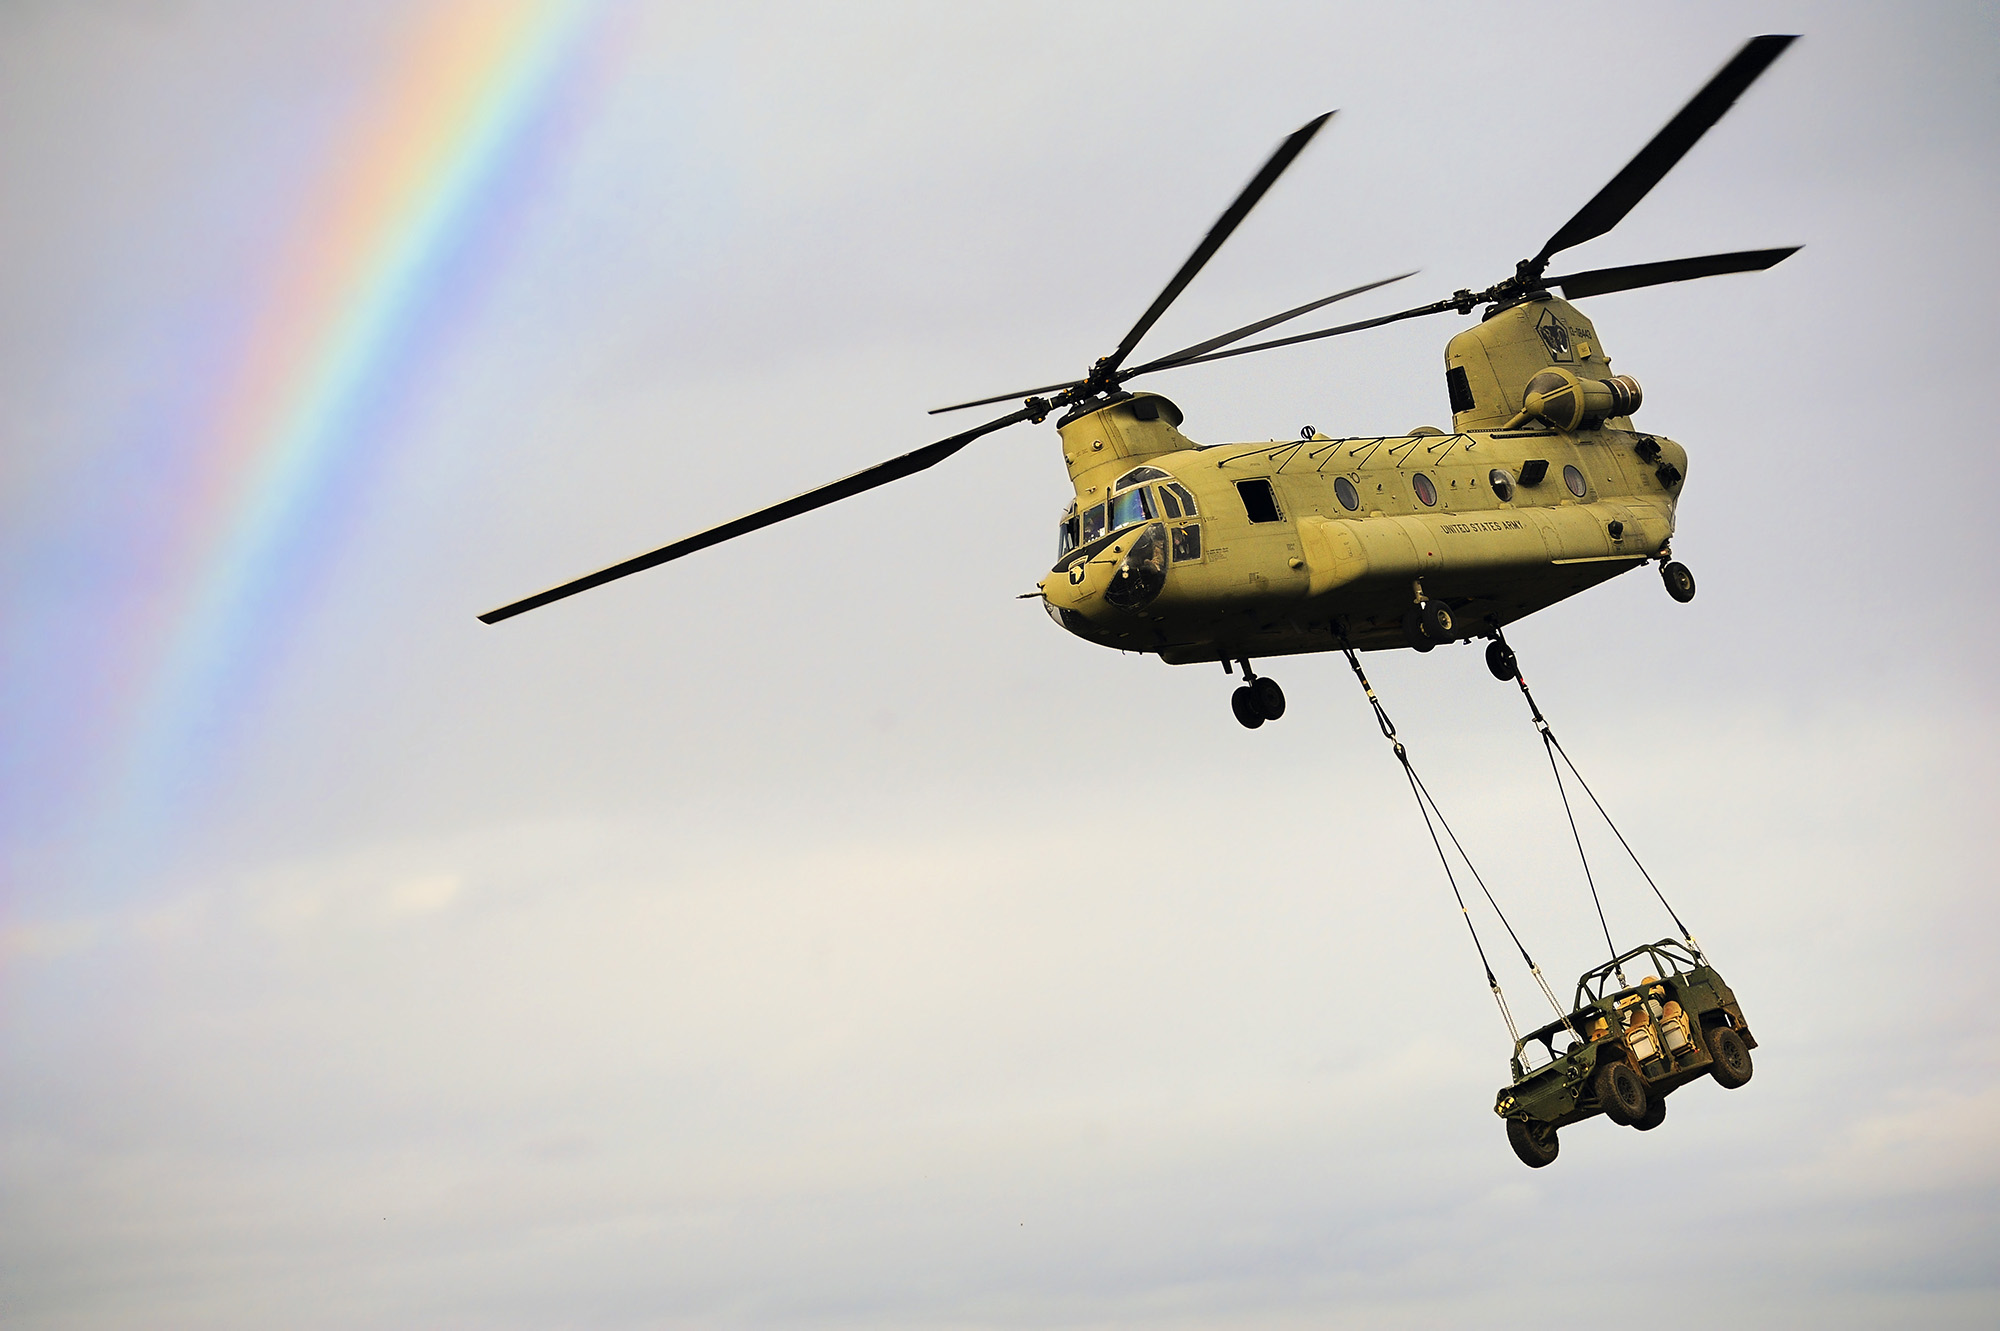 U.S. Army paratroopers conduct sling load operations with a CH-47 Chinook helicopter on Jan. 20, 2021, during exercise Eagle Talon, Monte Romano, Italy. (Elena Baladelli/Army)